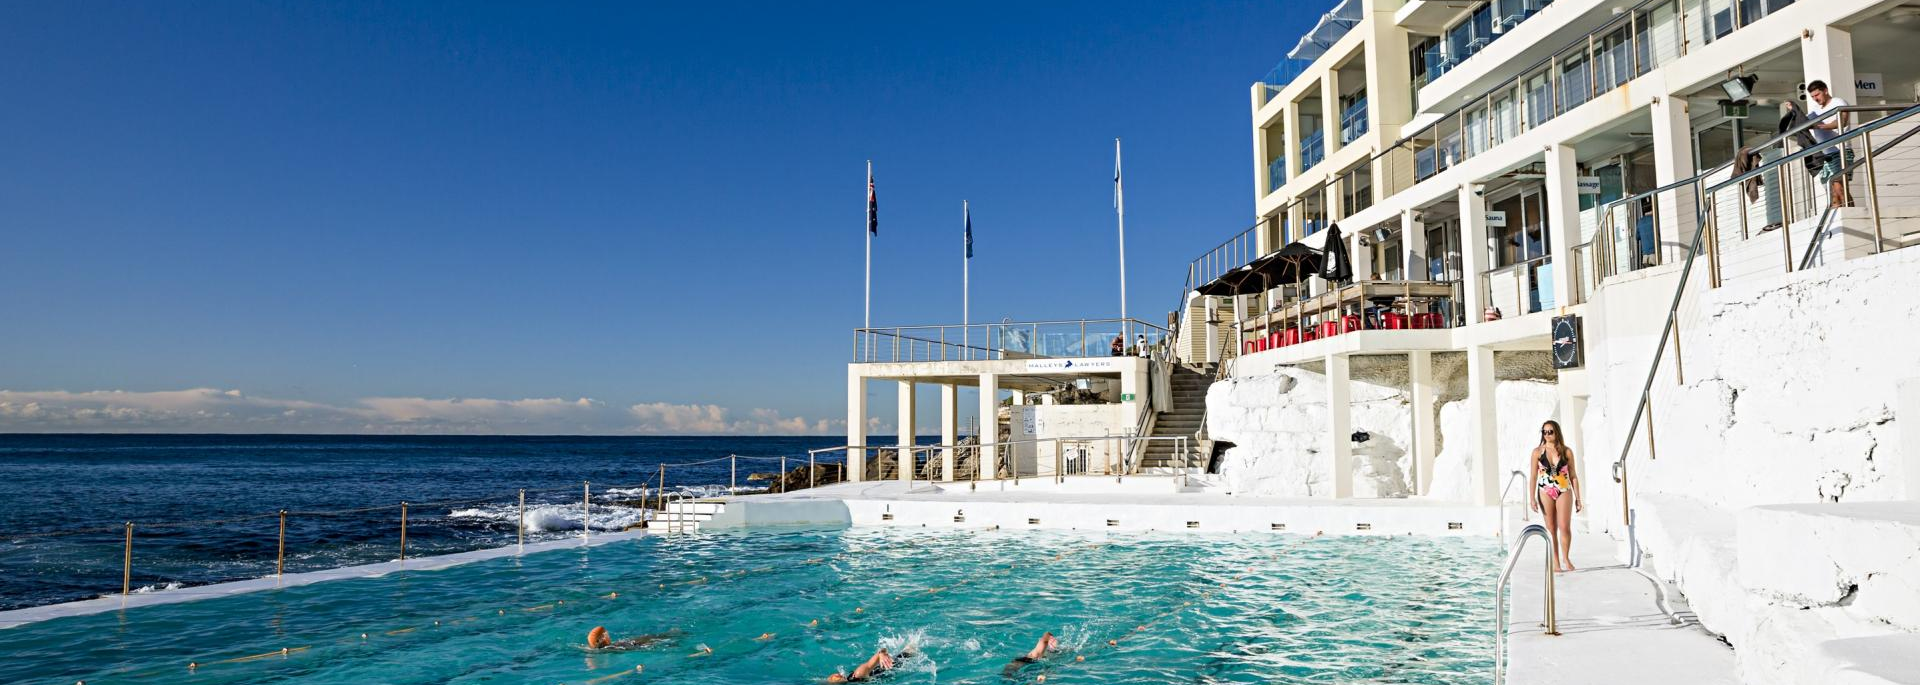 Things to do and top attractions in Bondi